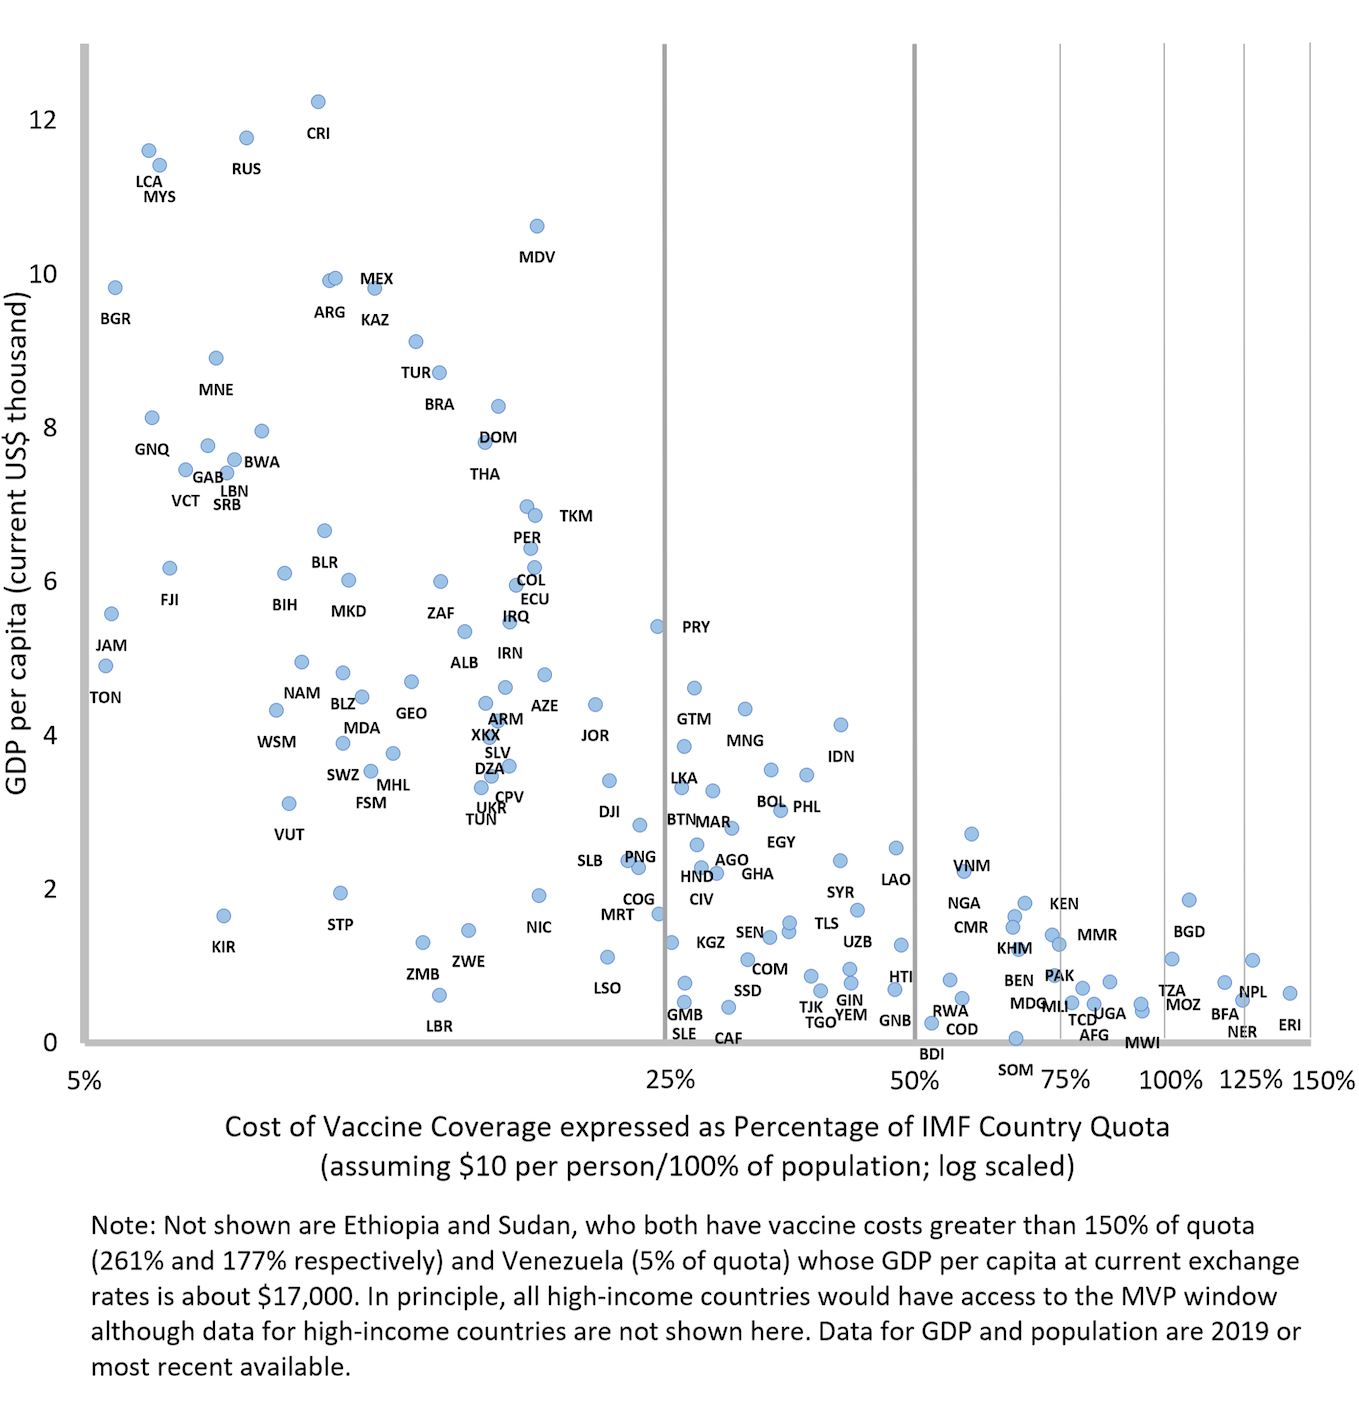 Chart showing cost of vaccine coverage as a percentage of IMF country quote vs. GDP per capita. There's a clear negative association: poorer countries will see vaccine coverage take up a far greater percentage of their IMF quota